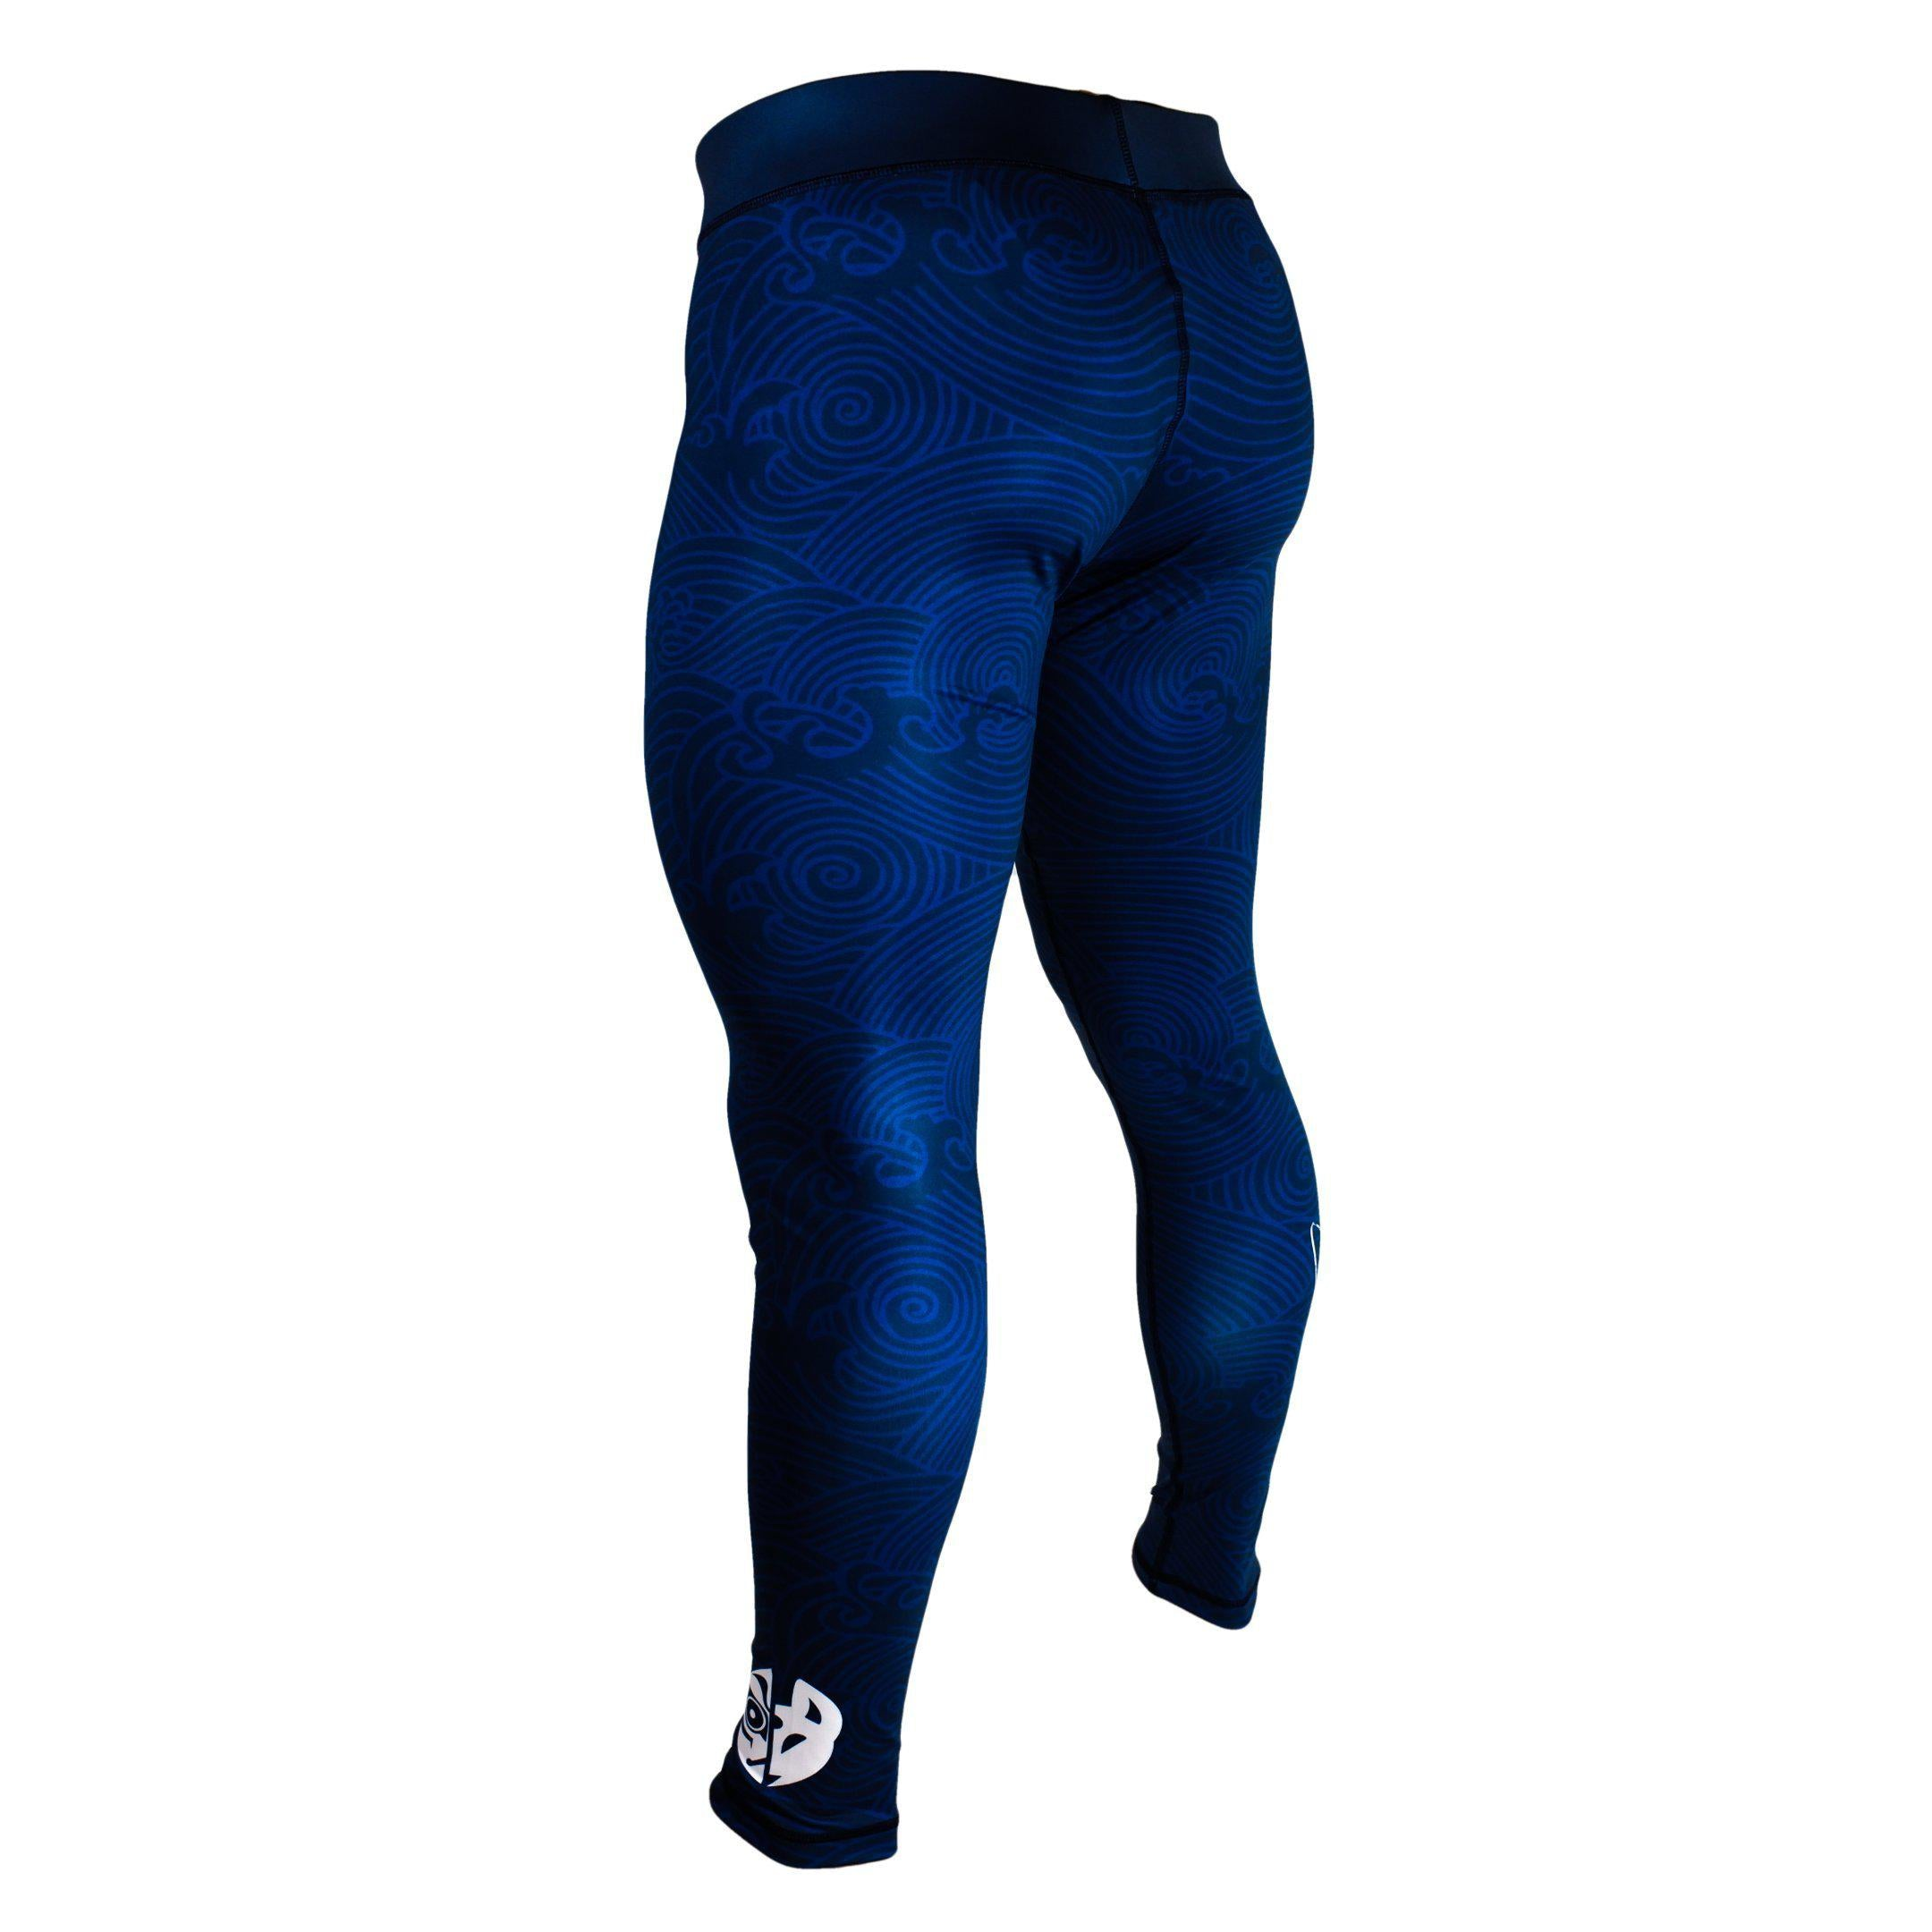 Zenko Fightwear The Great Wave Spats Back